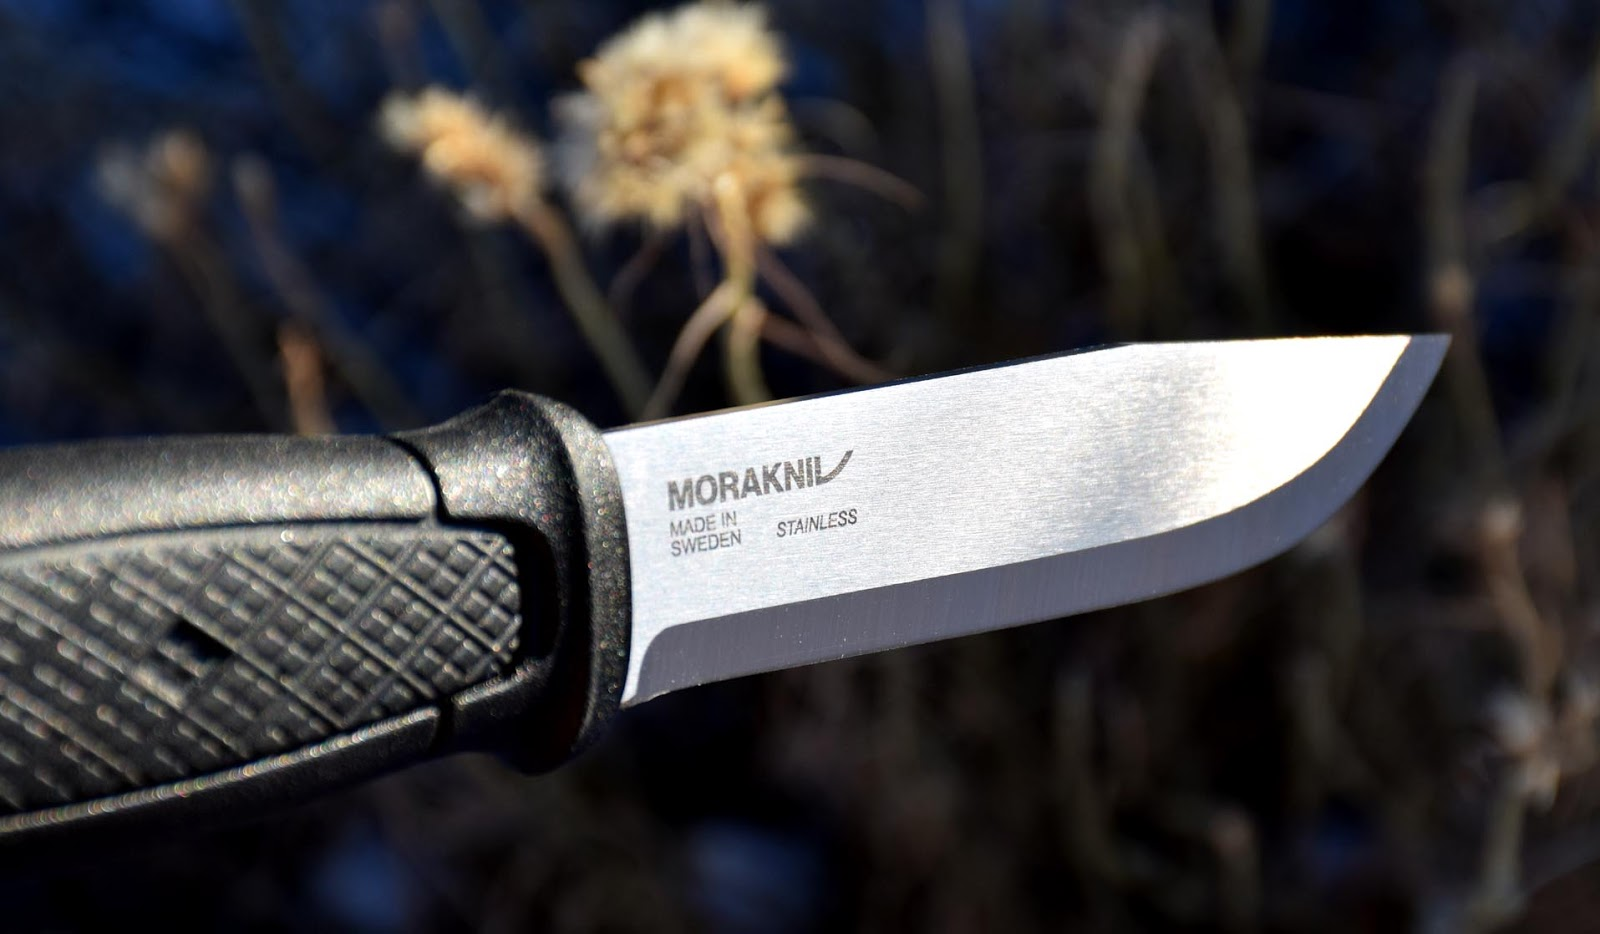 Rocky mountain bushcraft shot show 2014 first impression review -  Photo Credits Rocky Mountain Bushcraft 2016